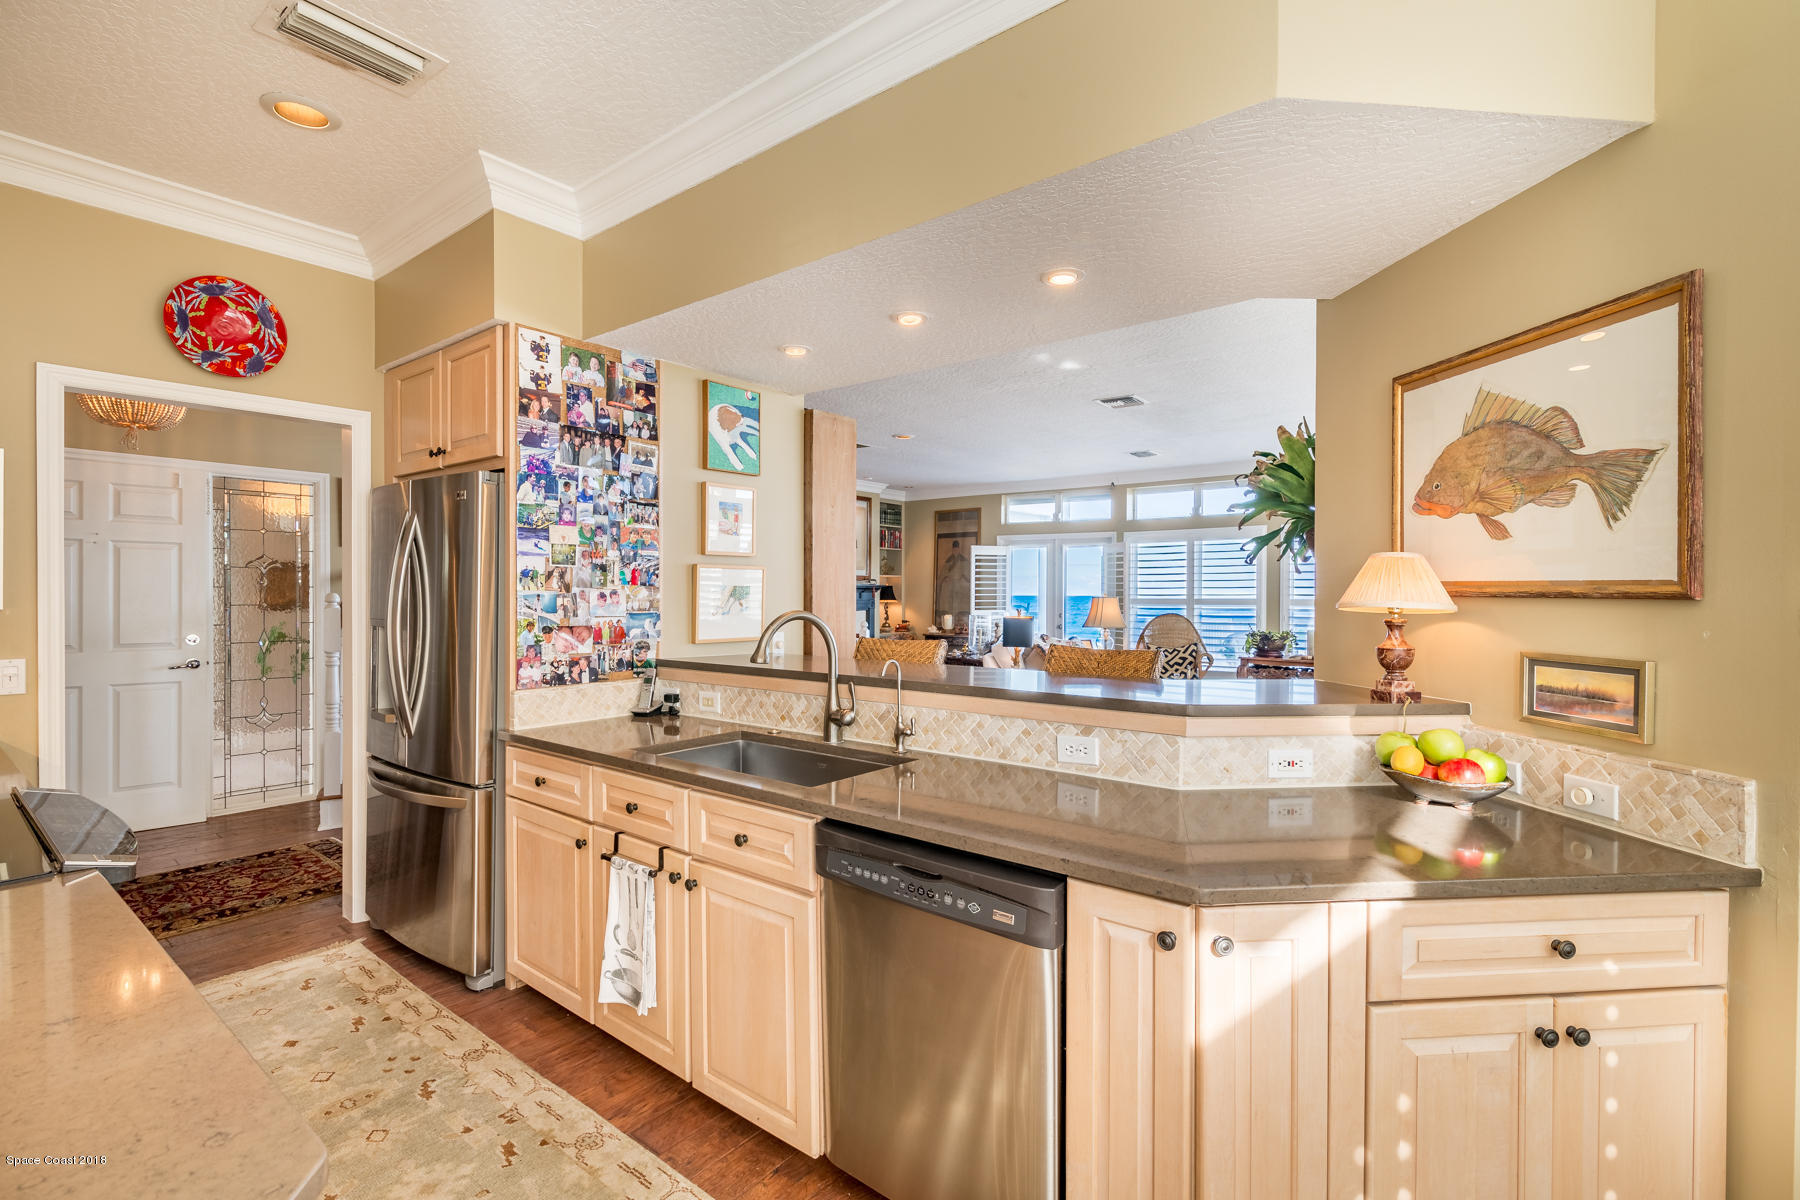 Additional photo for property listing at 8333 S Highway A1a Melbourne Beach, Florida 32951 United States